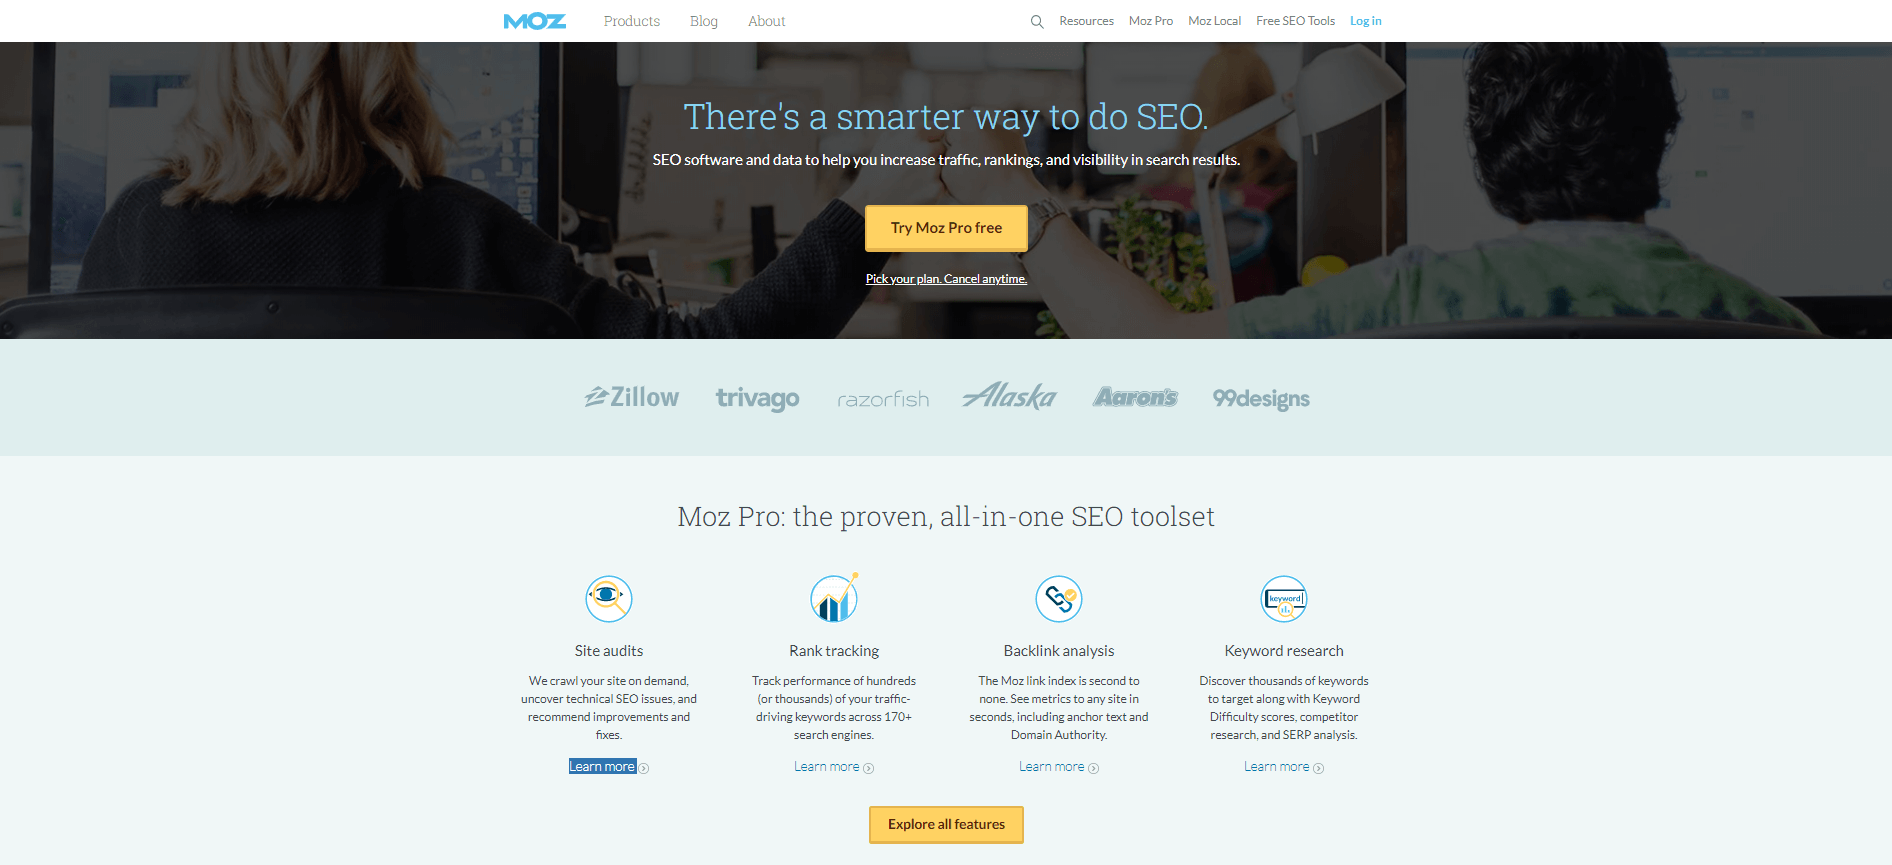 A screenshot of the MOZ services page.